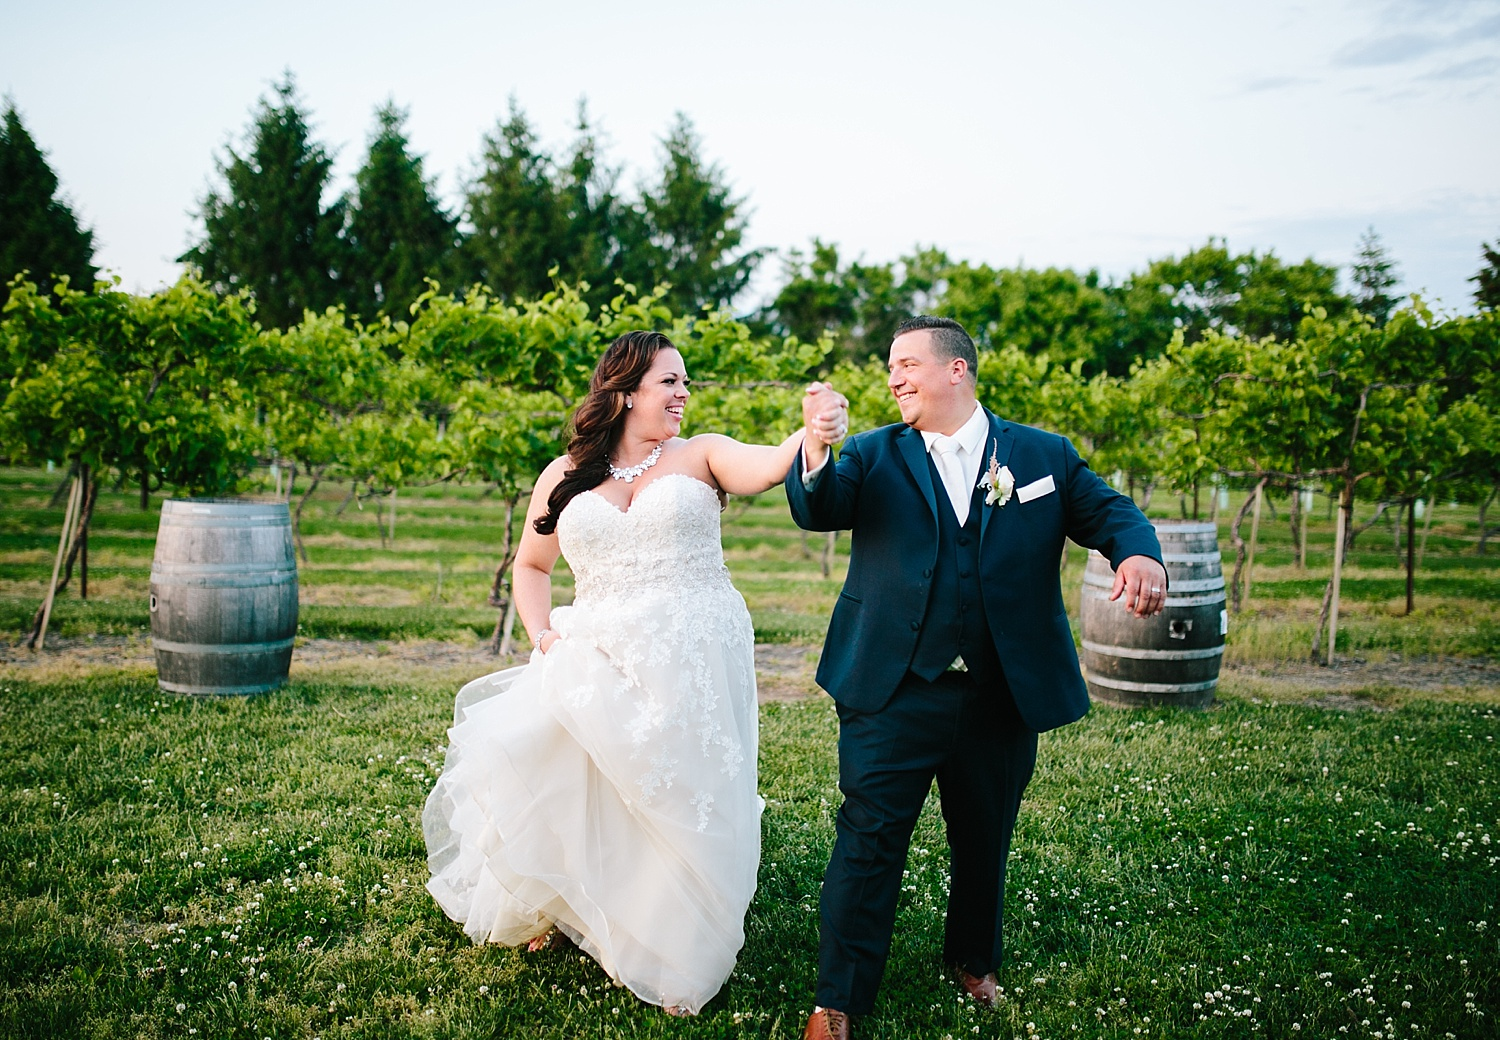 kellishawn_rosebankwinery_newtown_buckscounty_summer_wedding_image040.jpg